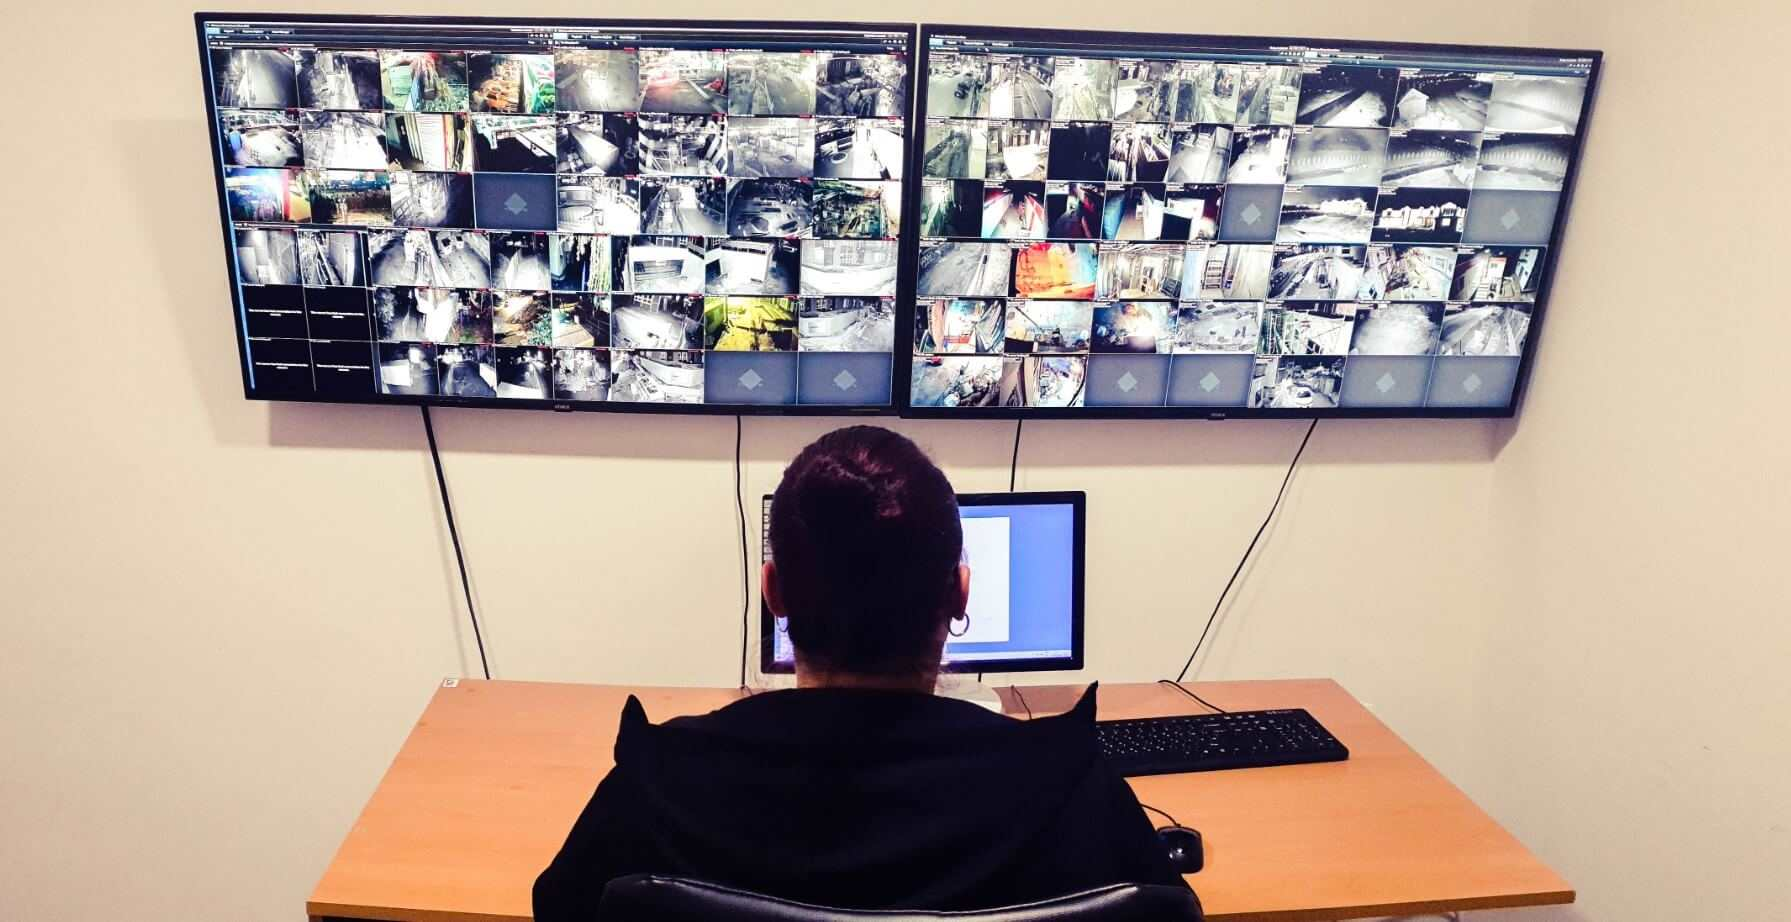 Active Watch Security is live video monitoring and video surveillance company